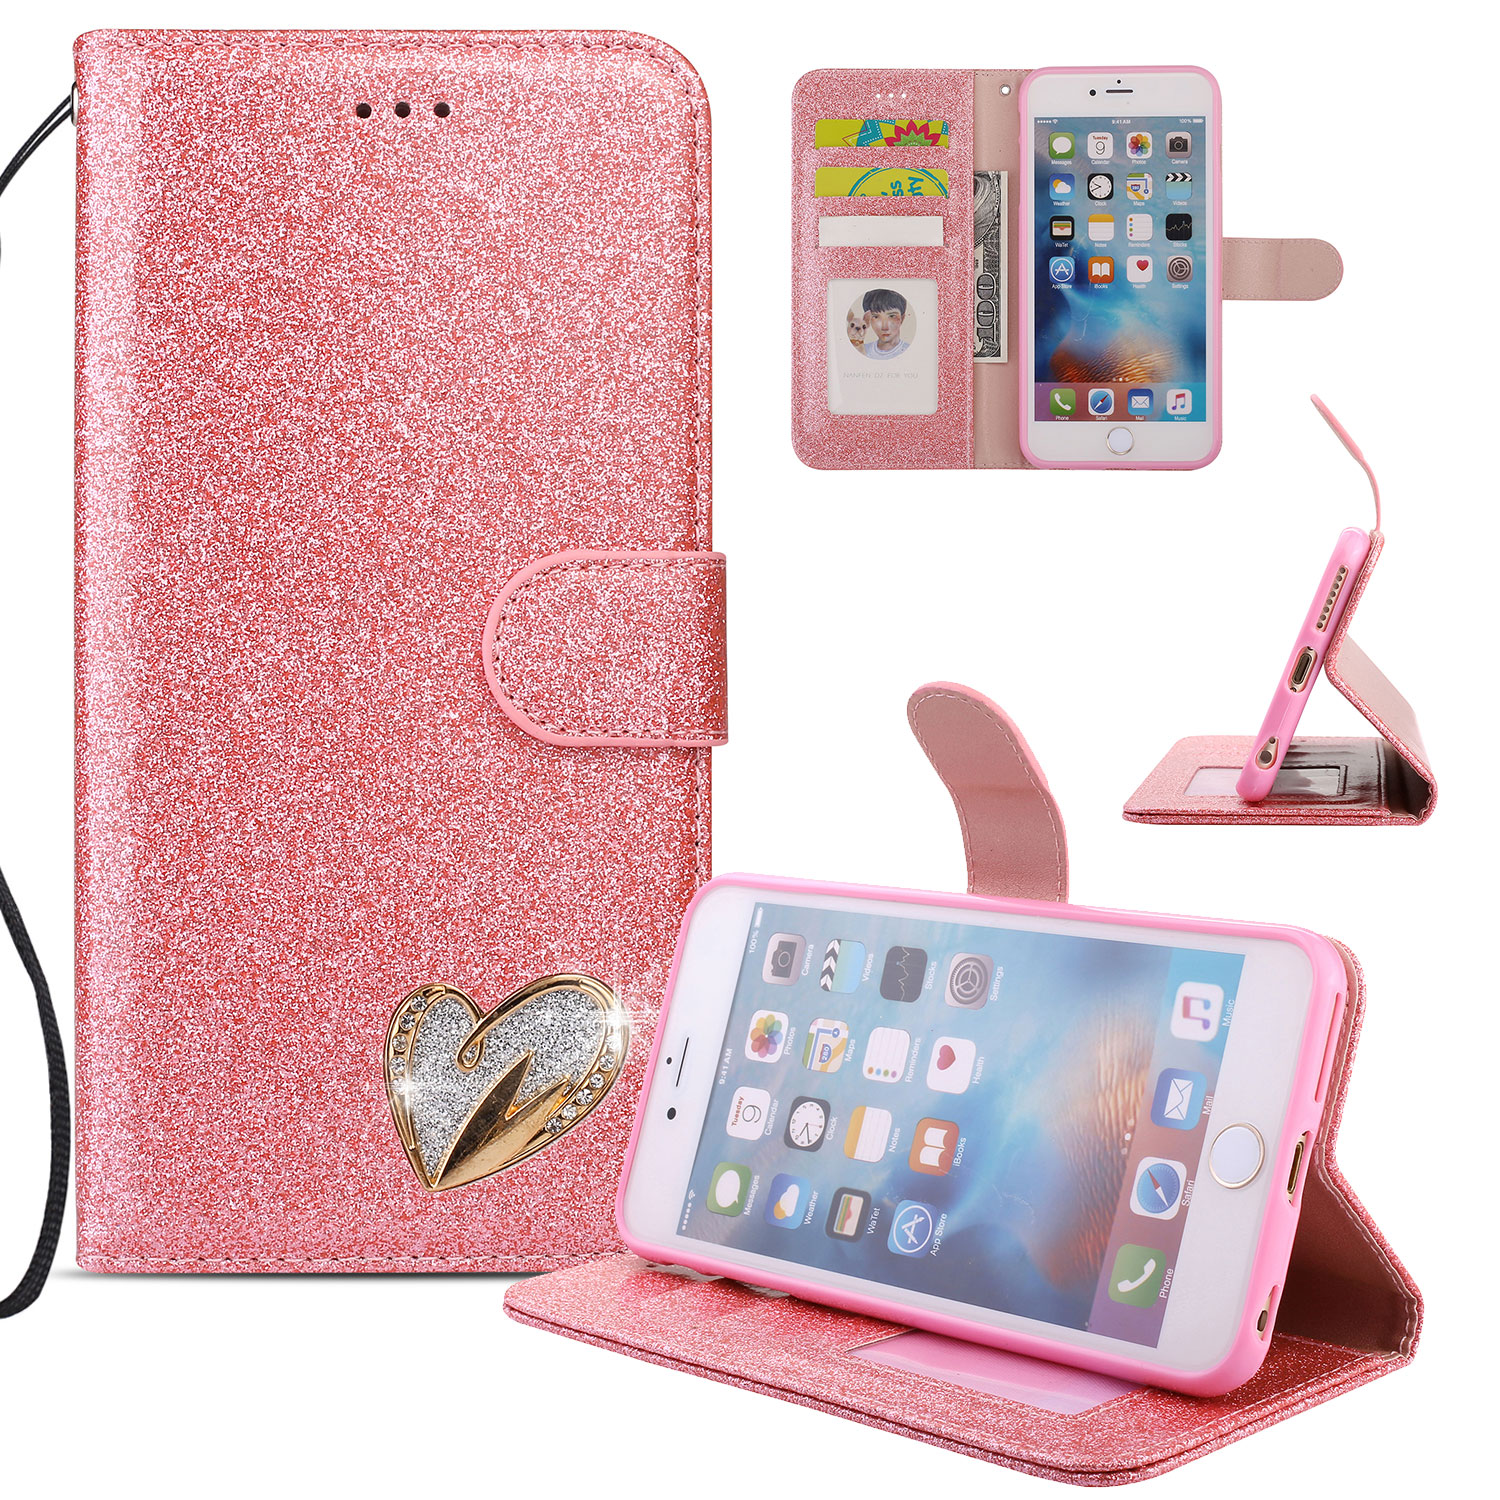 iPhone 6S Plus Case Wallet, iPhone 6 Plus Case, Allytech Glitter Folio Kickstand with Wristlet Lanyard Shiny Sparkle Luxury Bling Card Slots Slim Cover for Apple iPhone 6 Plus/ 6S Plus (Pink)